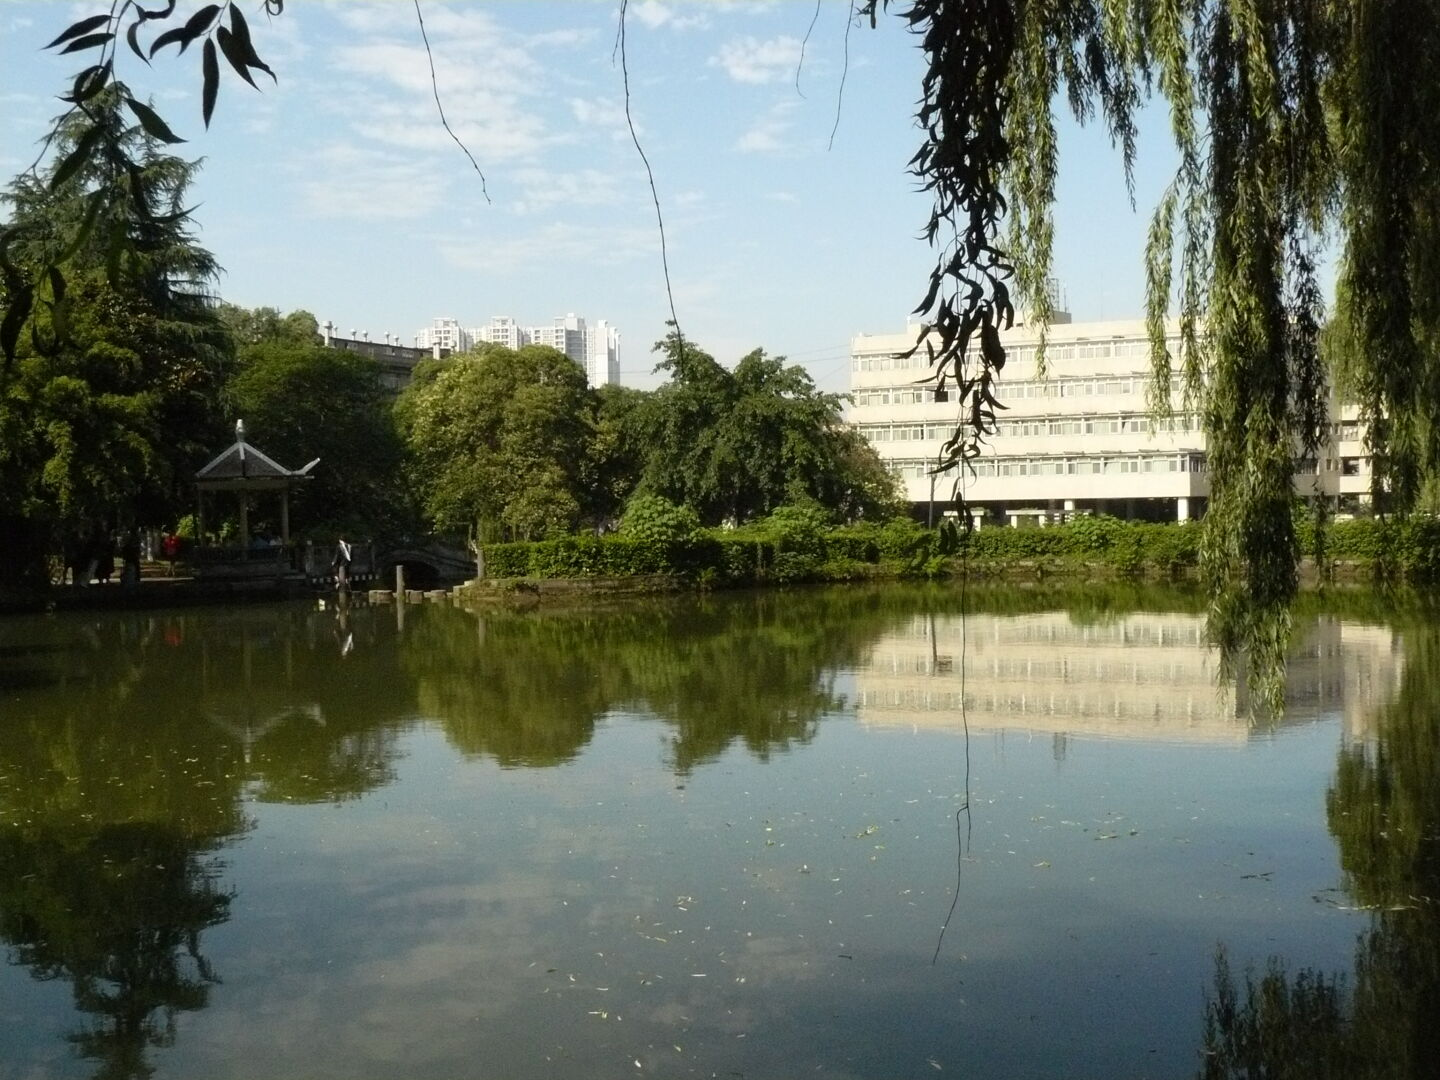 In the middle of the old campus, there is this artificial lake.